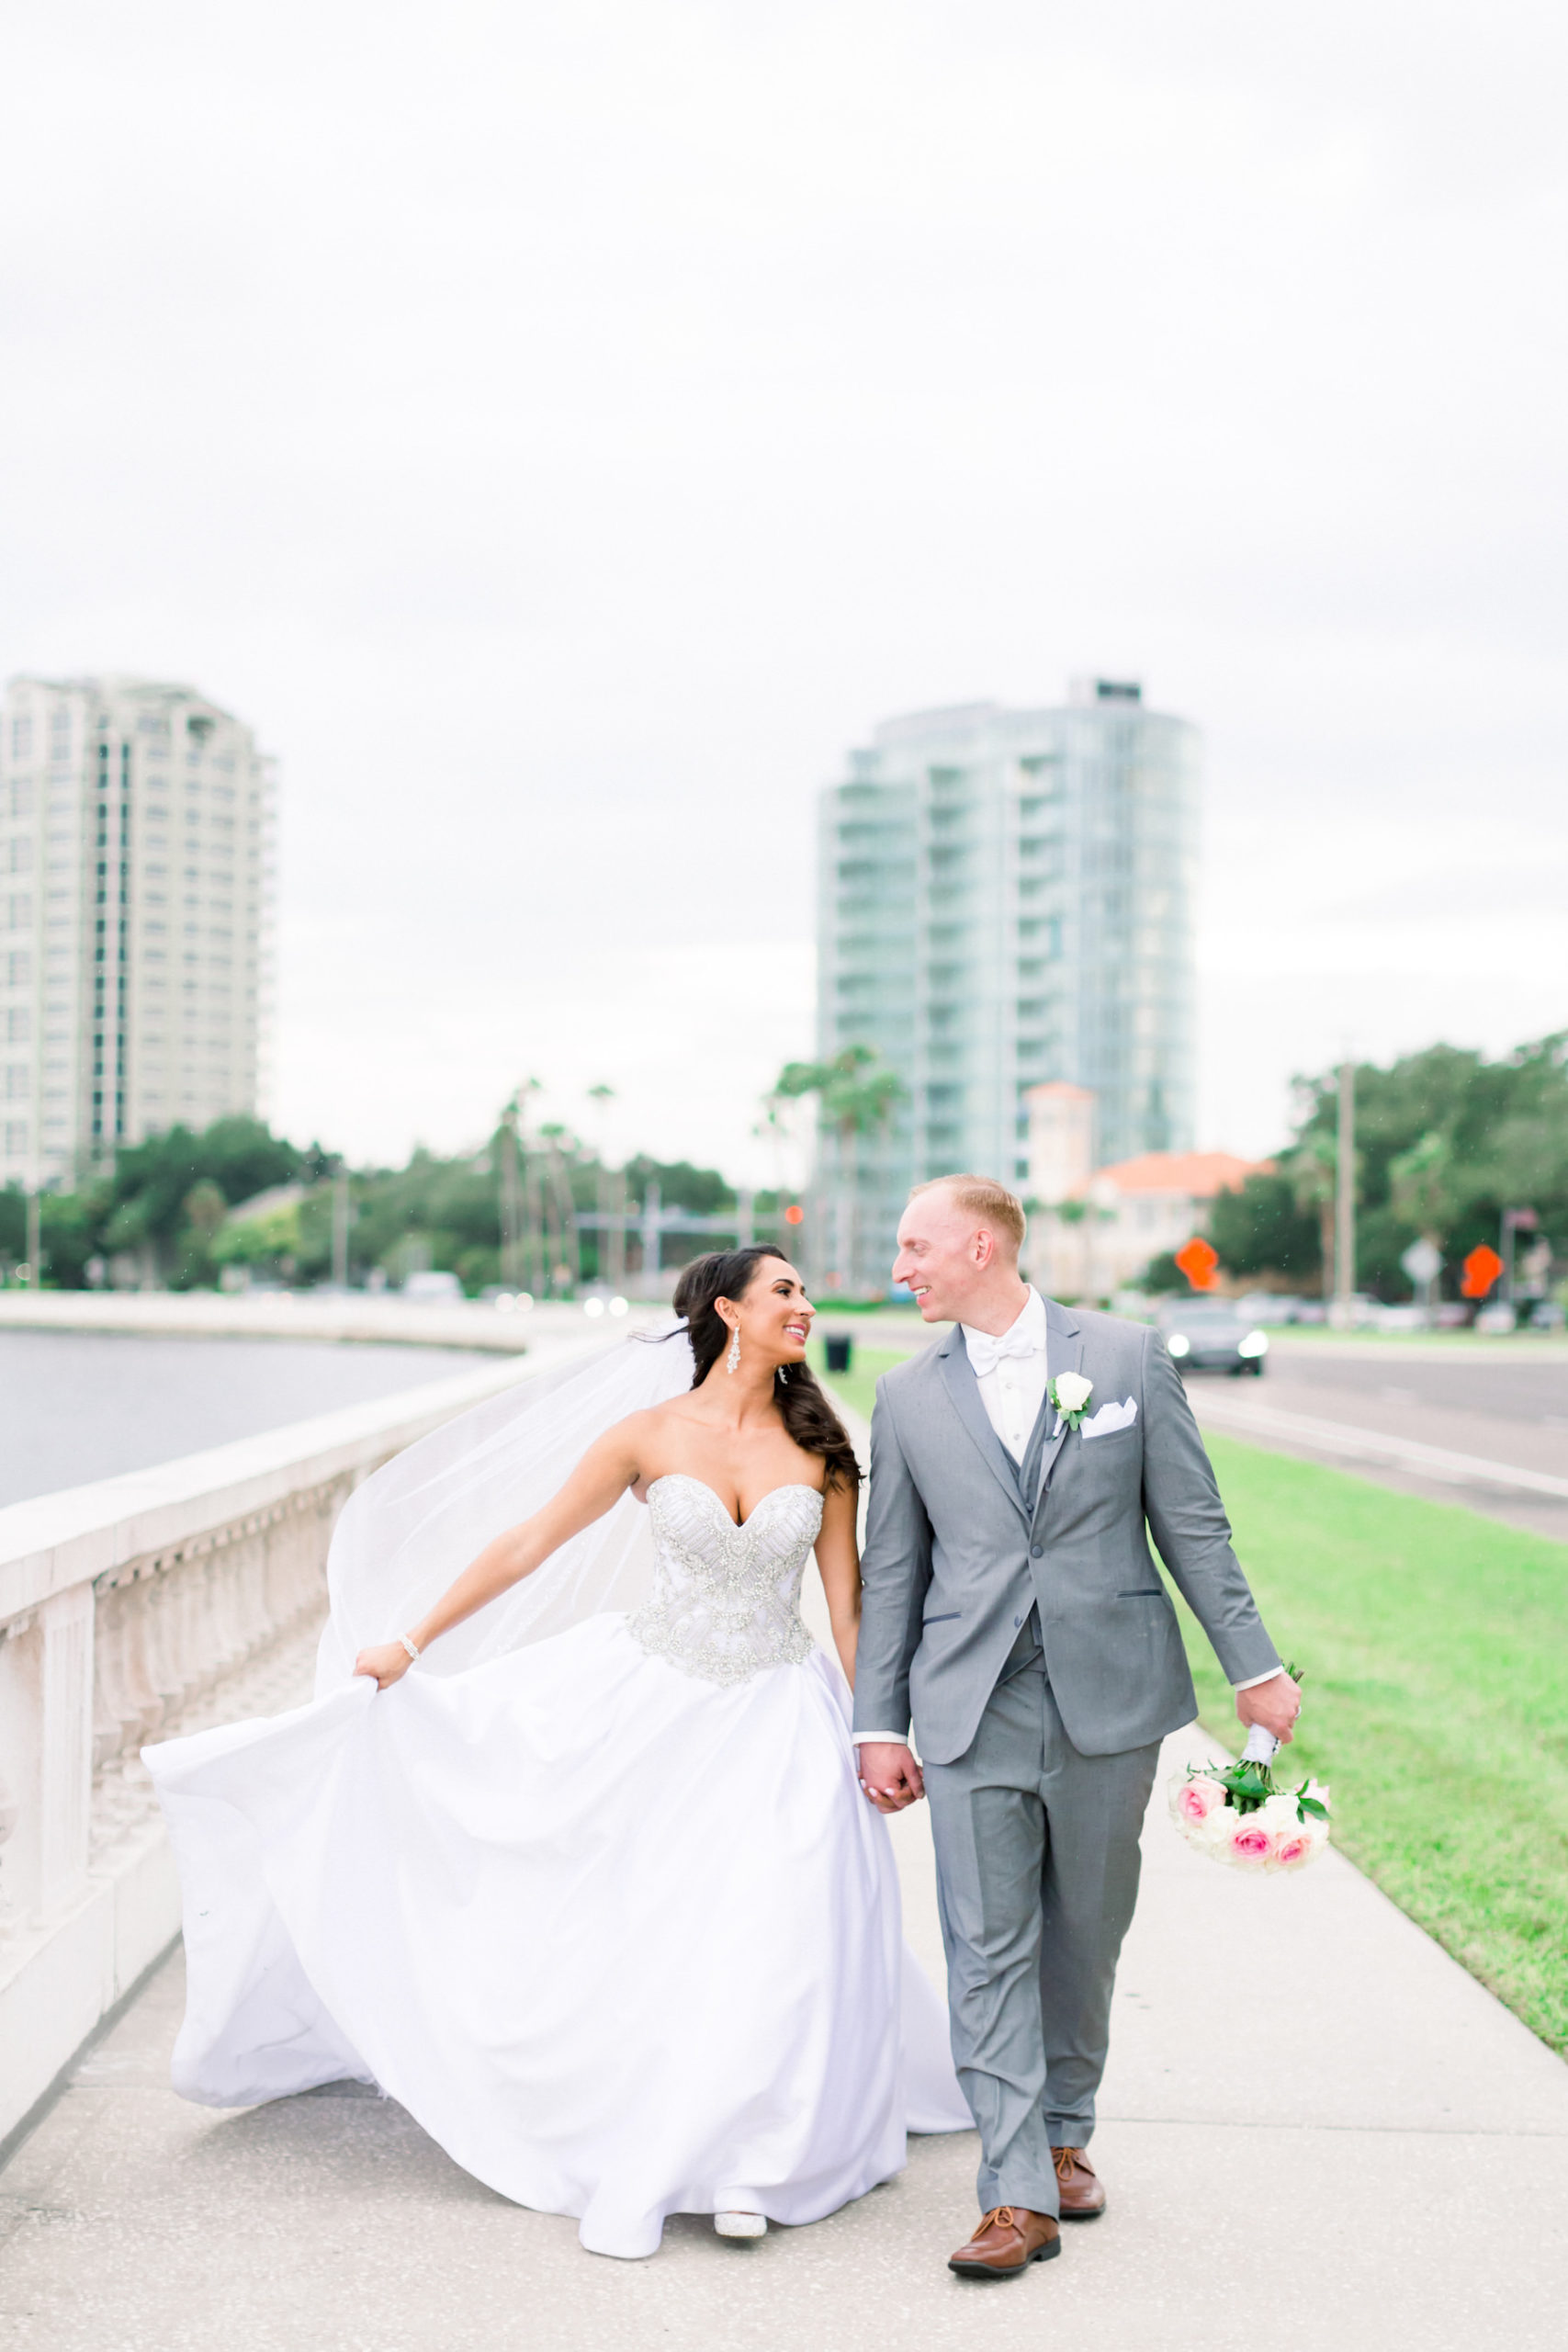 Bride in Strapless Sweetheart Rhinestone Bodice Ballgown Wedding Dress with Groom in Gray Suit Walking Down Bayshore Boulevard | Tampa Bay Wedding Photographer Shauna and Jordon Photography | Wedding Dress Truly Forever Bridal